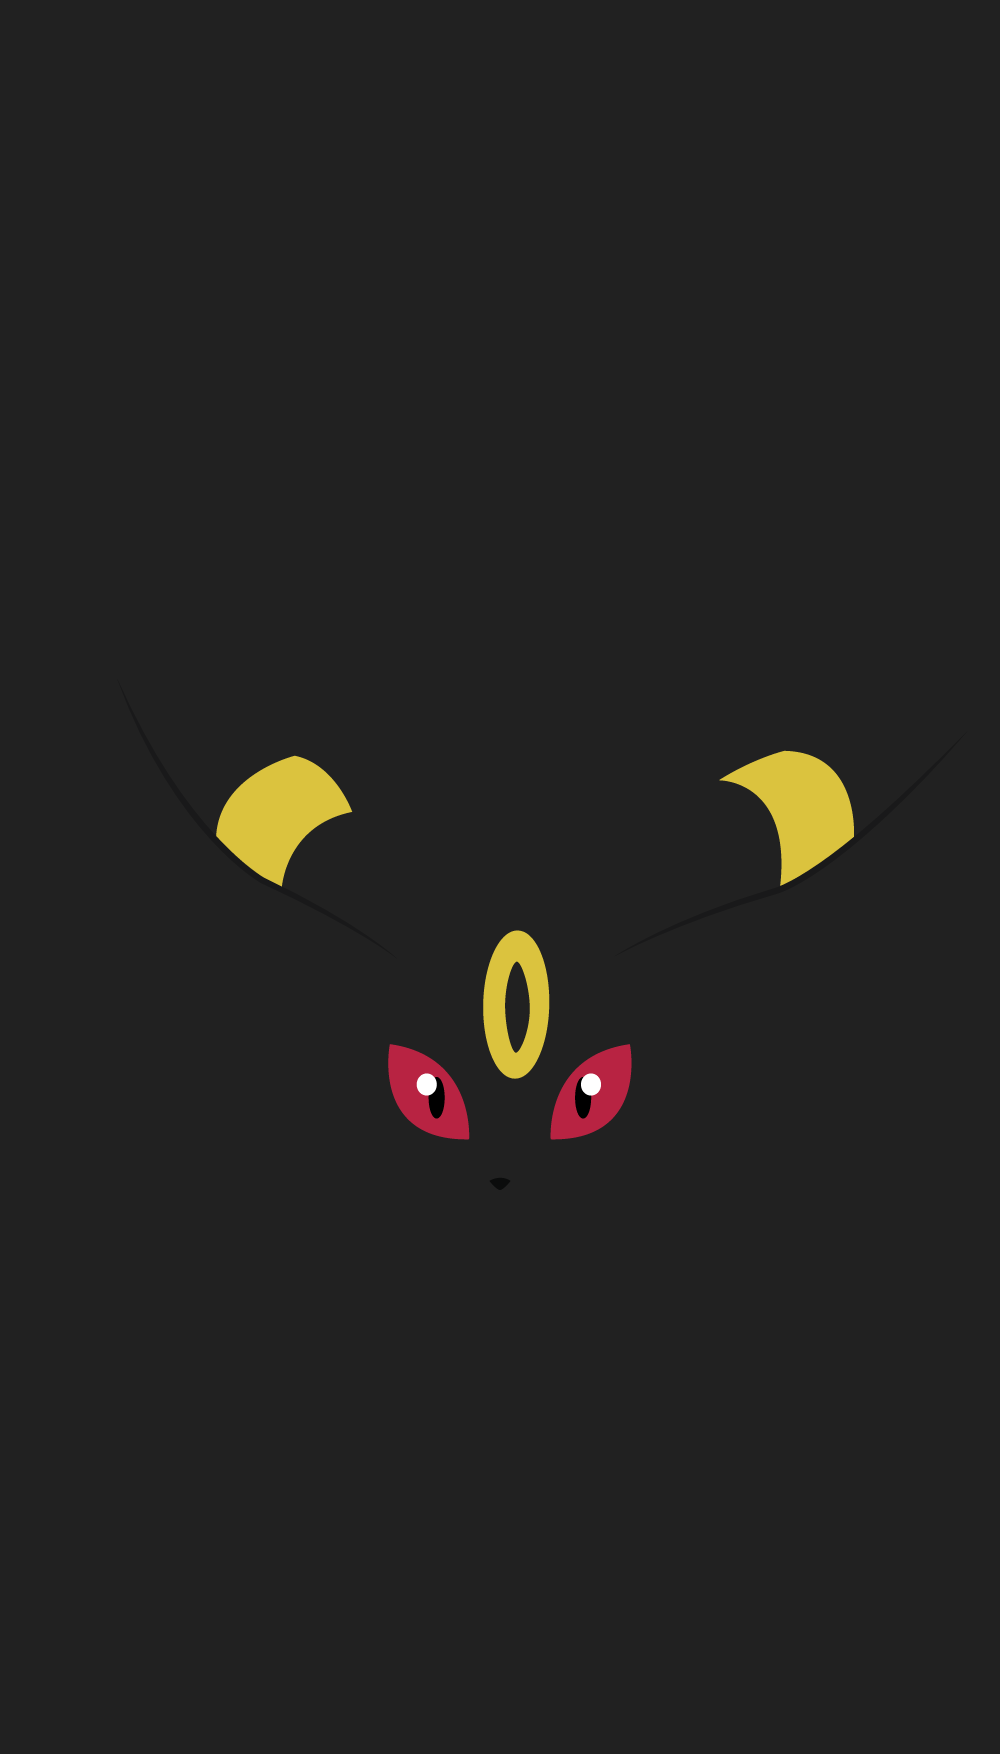 Simple Wallpaper Halloween Eevee - d9f5fcdd8e2393d7dc95c2288c180700  Graphic_299981.png